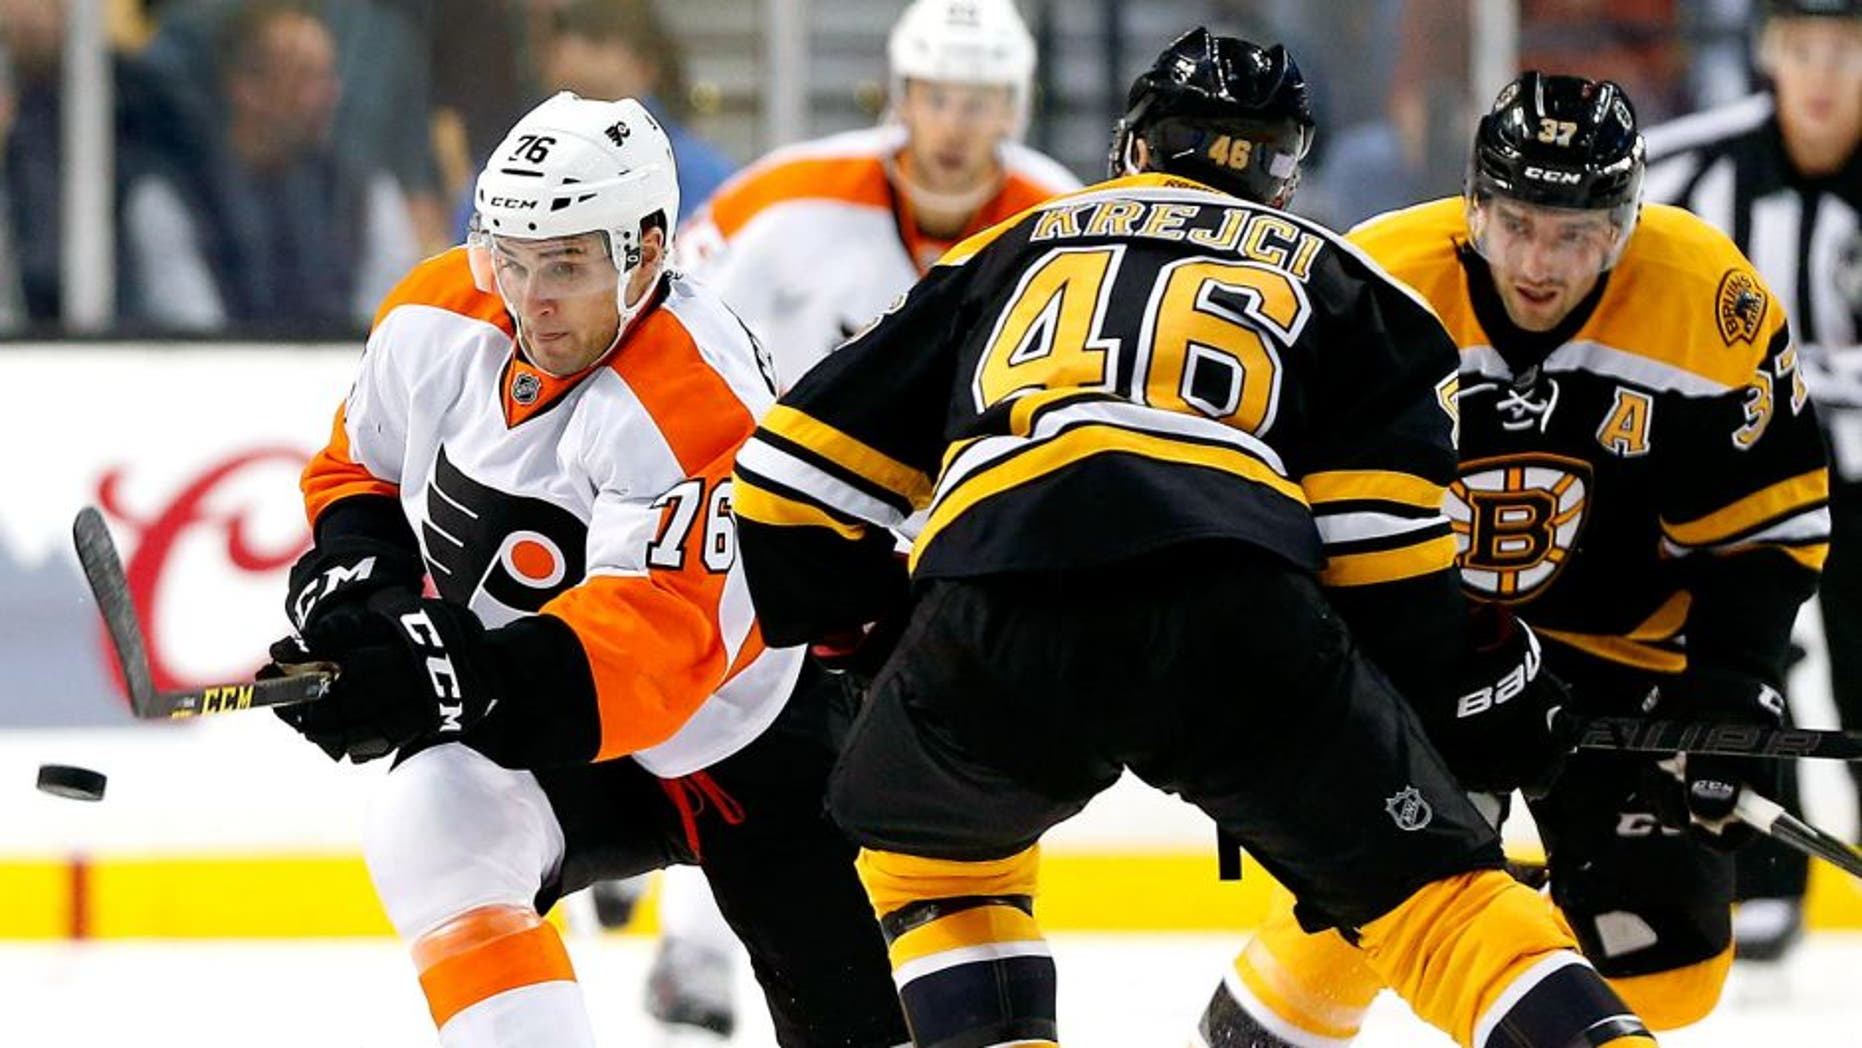 Oct 21, 2015; Boston, MA, USA; Philadelphia Flyers center Chris VandeVelde (76) tries to get past Boston Bruins center David Krejci (46) during the second period of the Philadelphia Flyers 5-4 overtime win over the Boston Bruins at TD Garden. Mandatory Credit: Winslow Townson-USA TODAY Sports